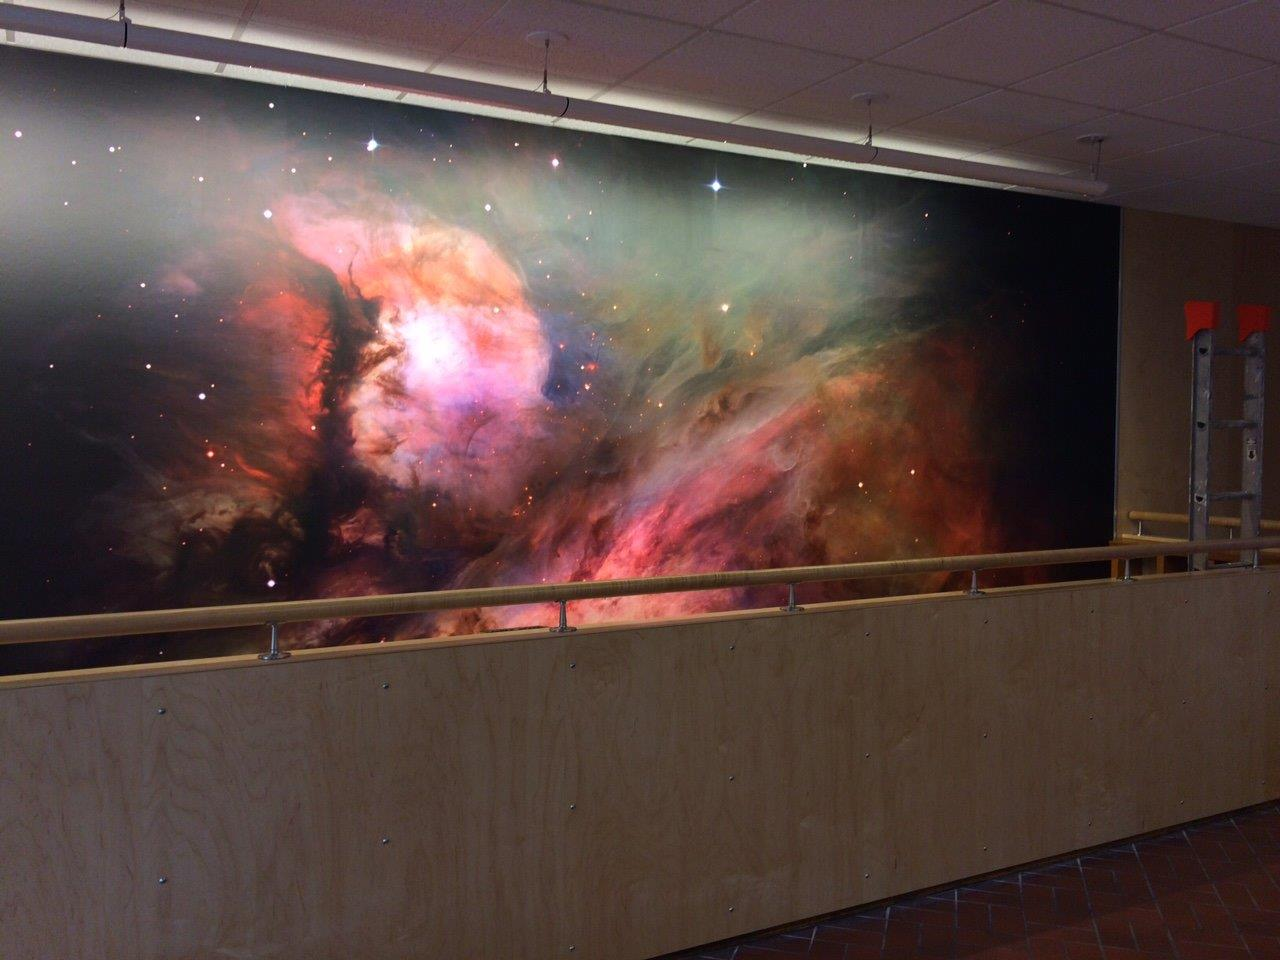 The 18-foot image from the Hubble Space Telescope of the Orion Nebula is the siren attracting visitors downstairs to the Southworth Planetarium.